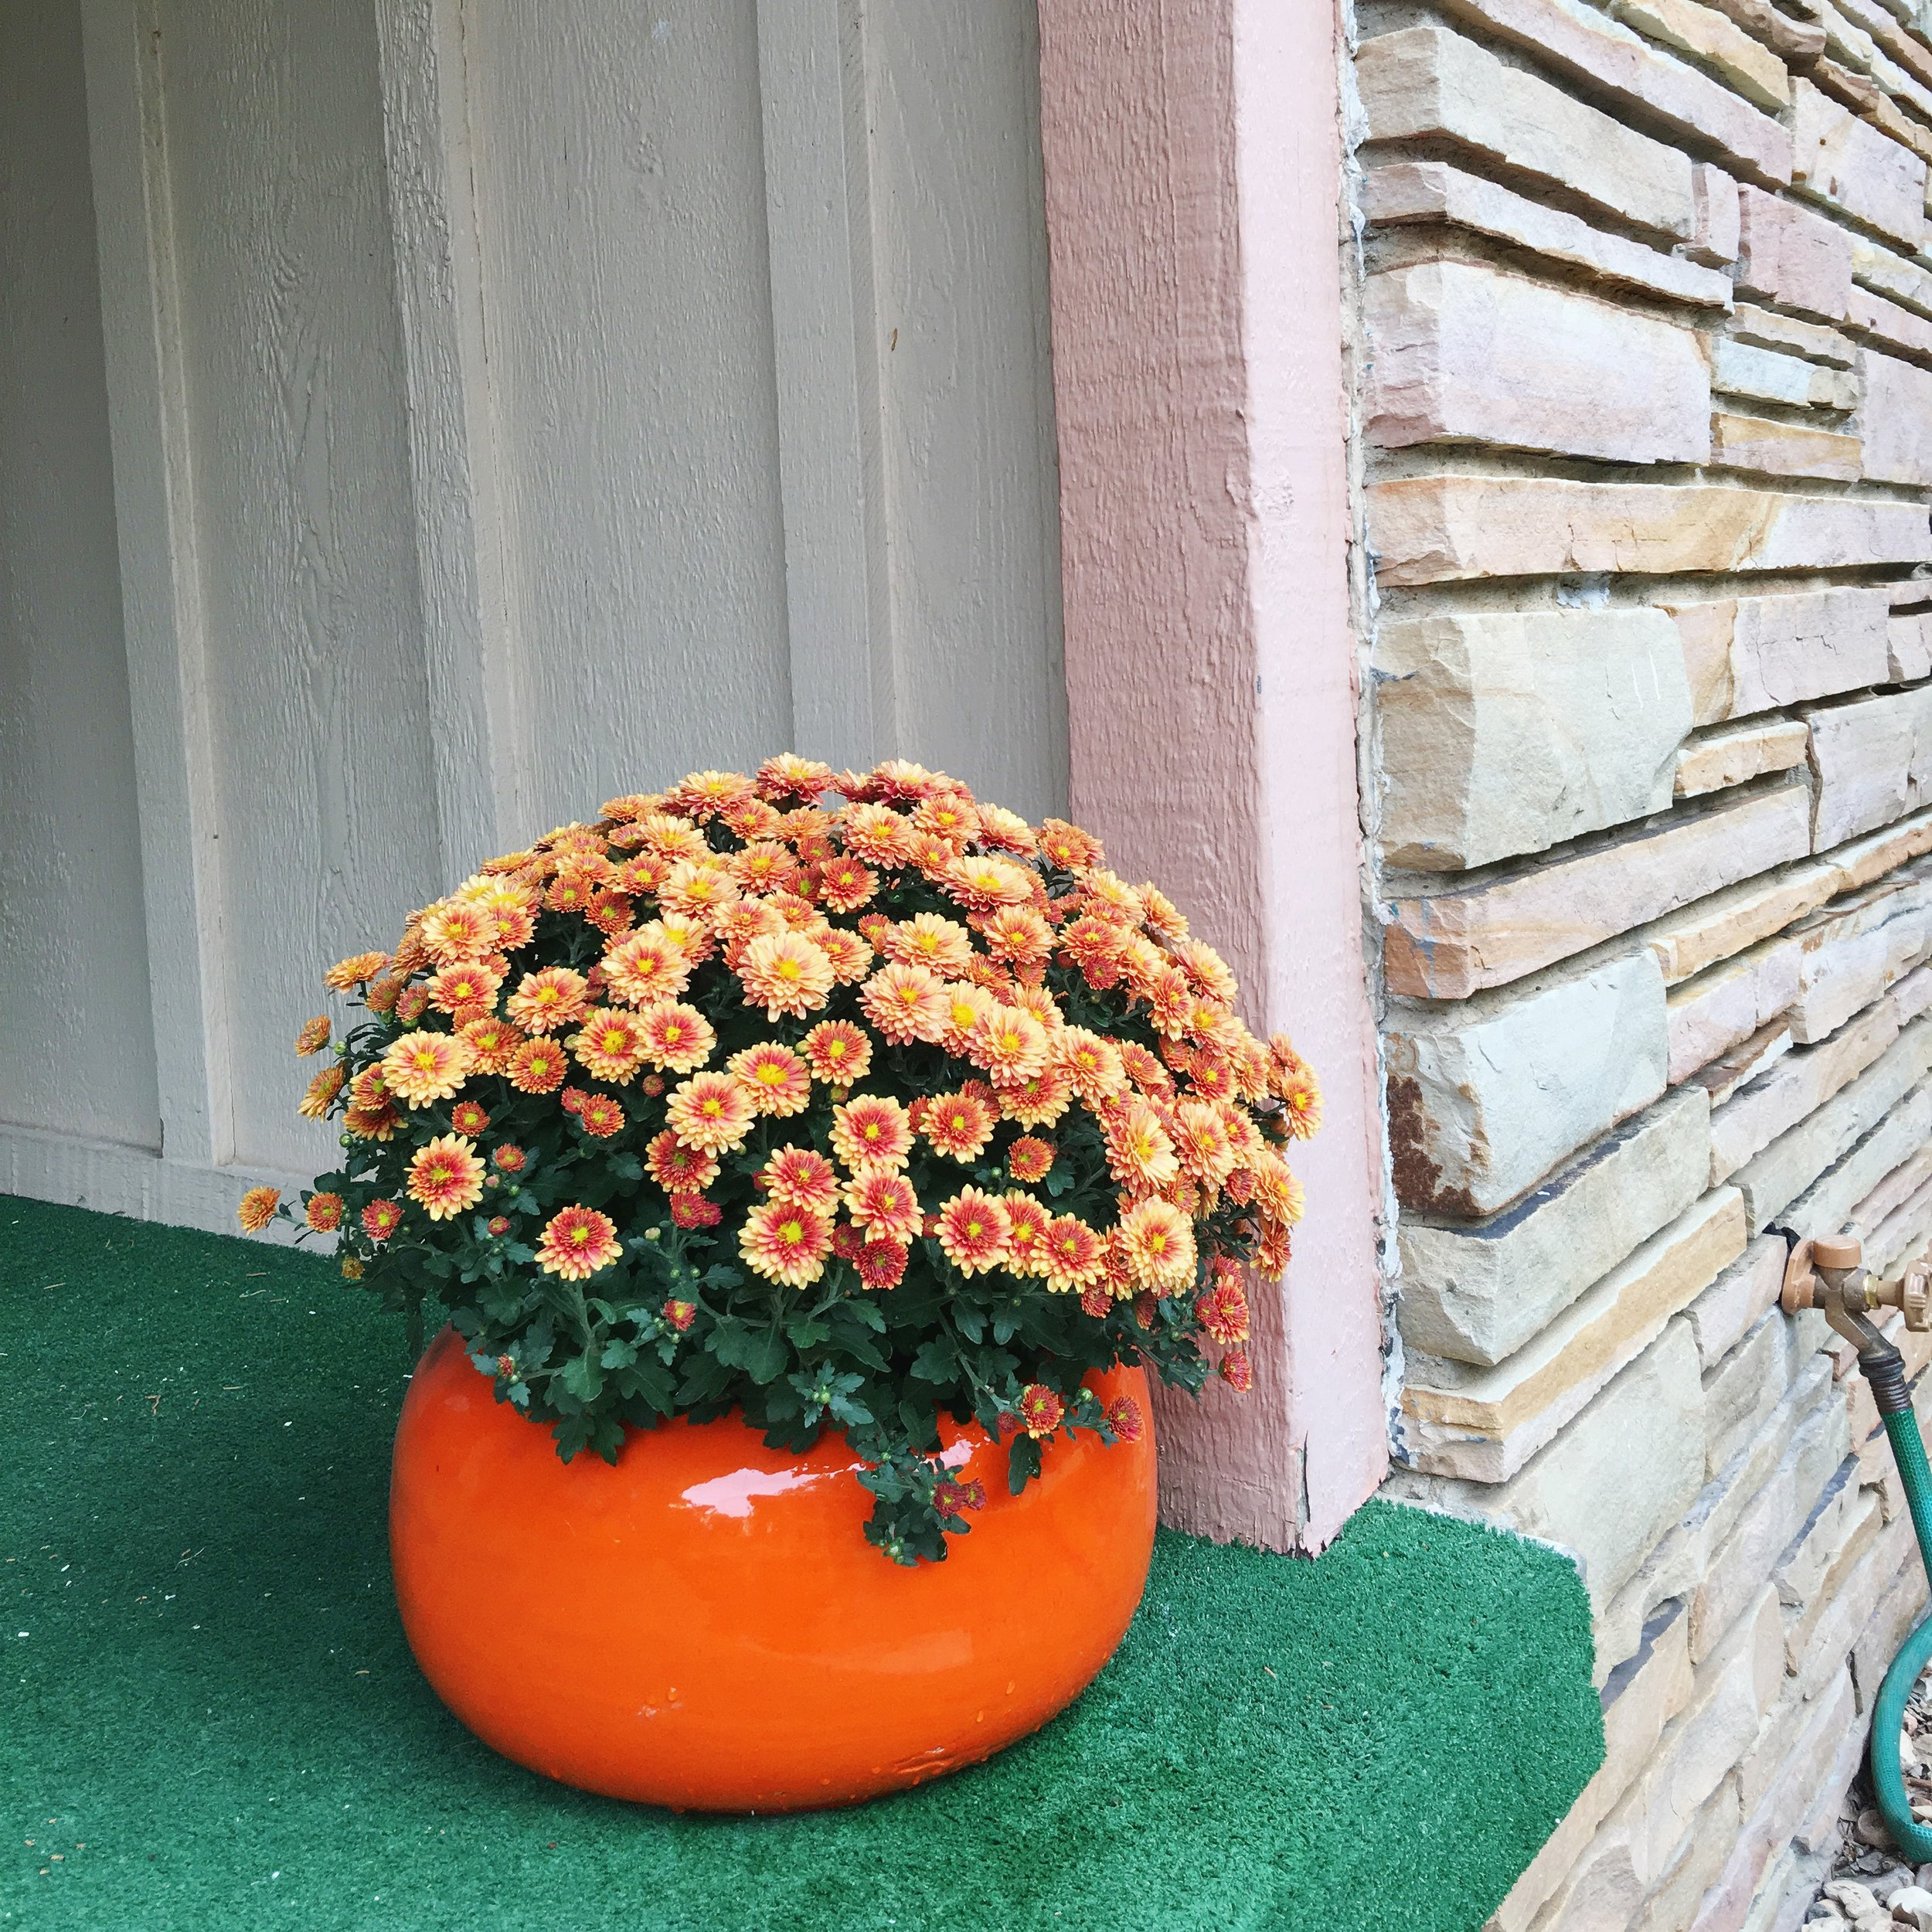 Palmer has fall fever as indicated by the mums on her front porch.